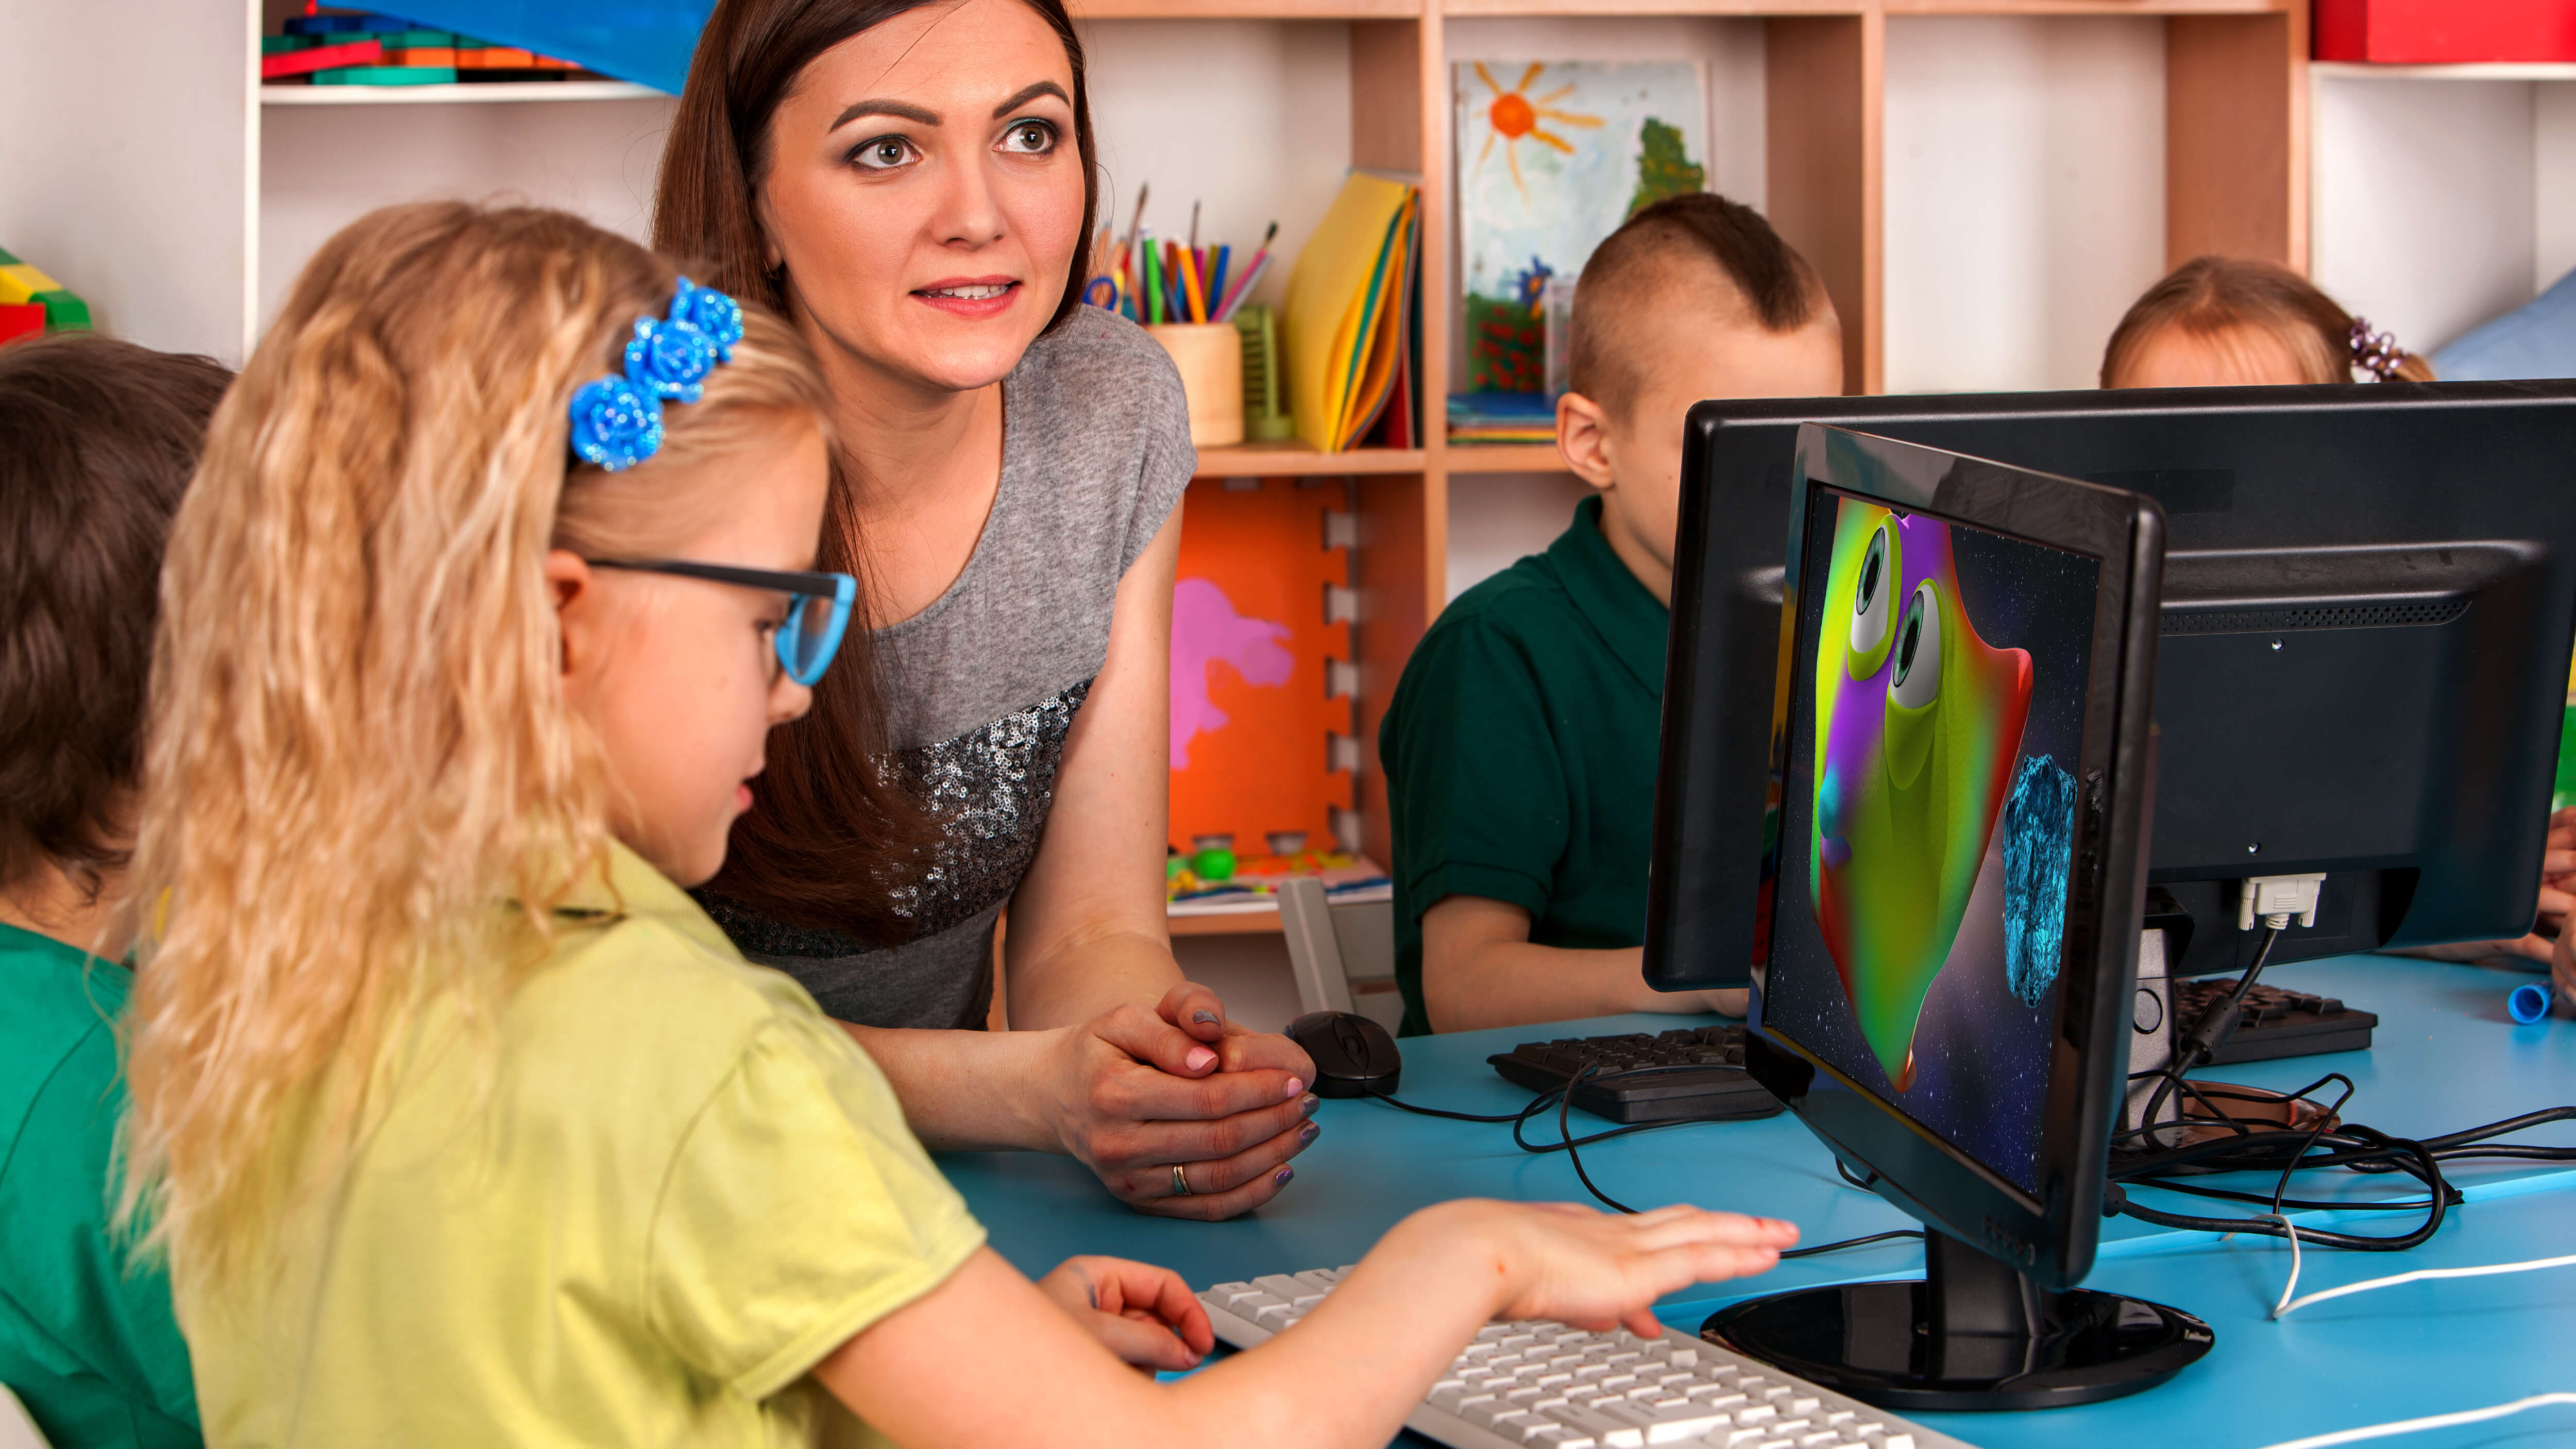 Six Ways Video Games Support Classroom Learning